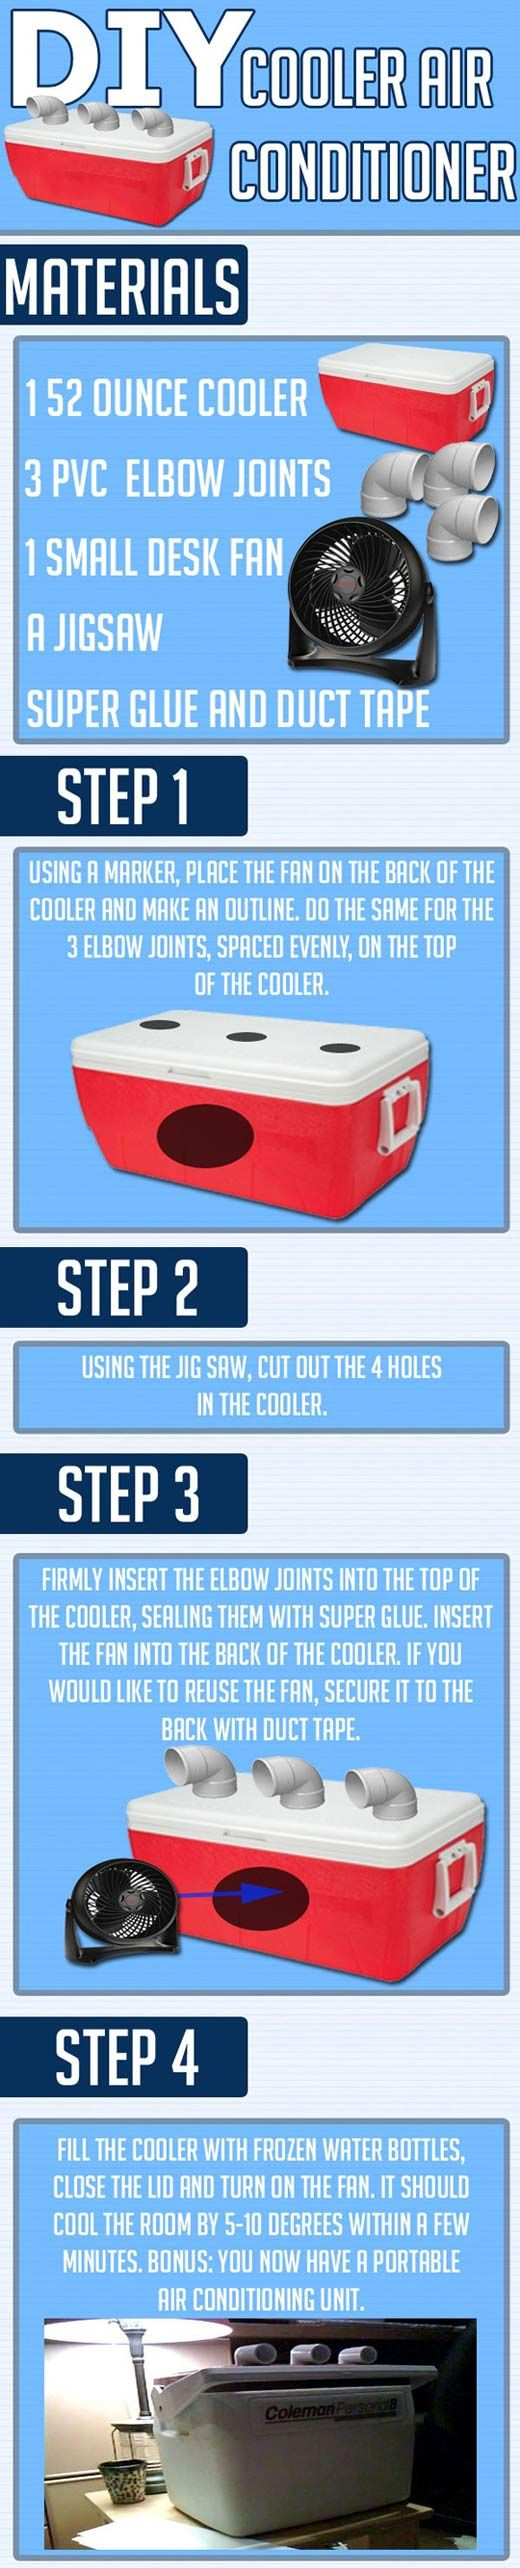 How to make your own cooler air conditioner… [ Swamp cooler ]